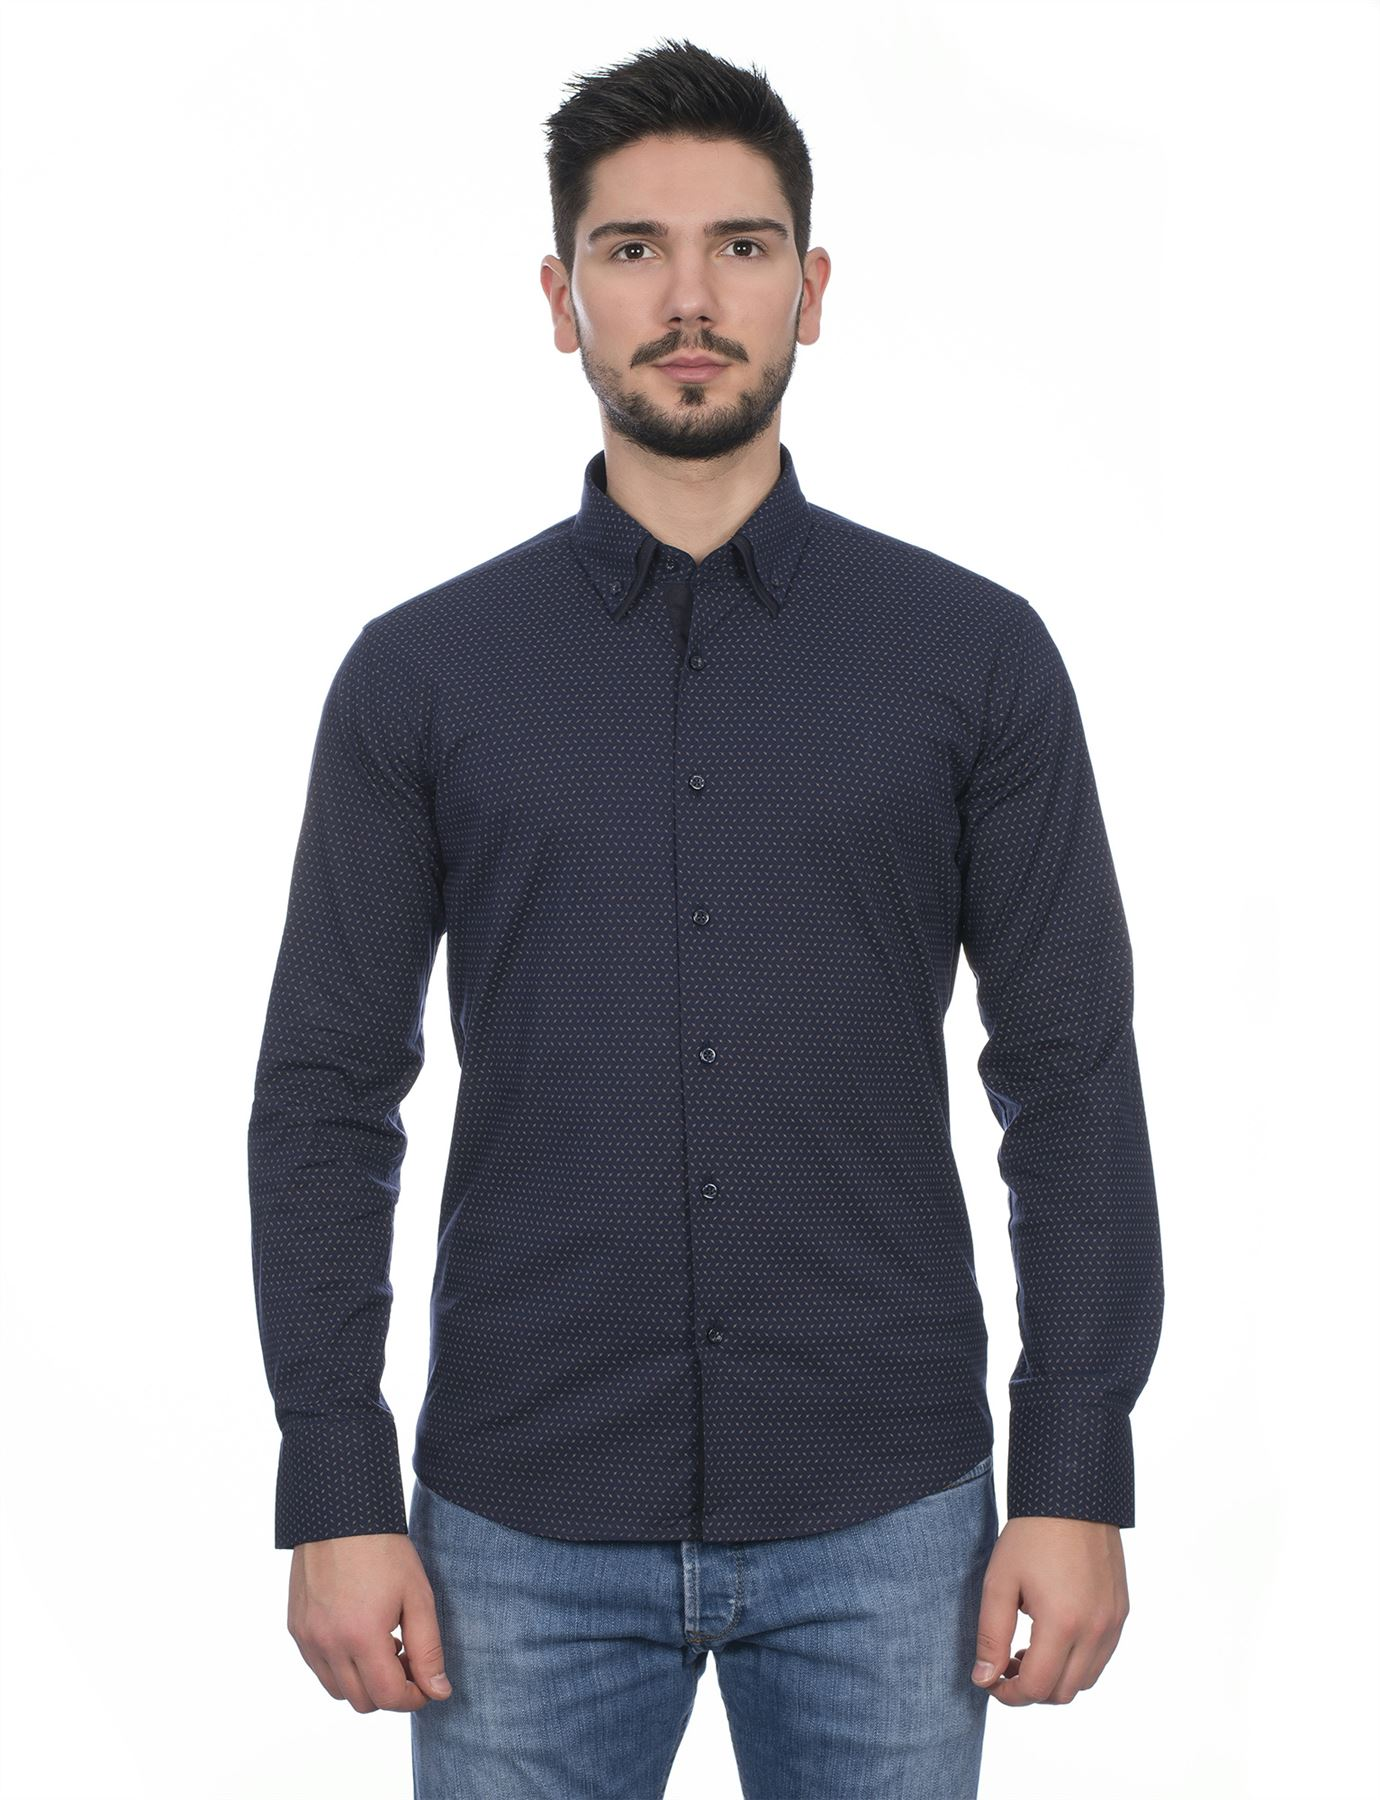 Casual Shirts For Men - The Best New Designer Styles - ReissFree Shipping Over +$ · Free Returns · Menswear · Blog.